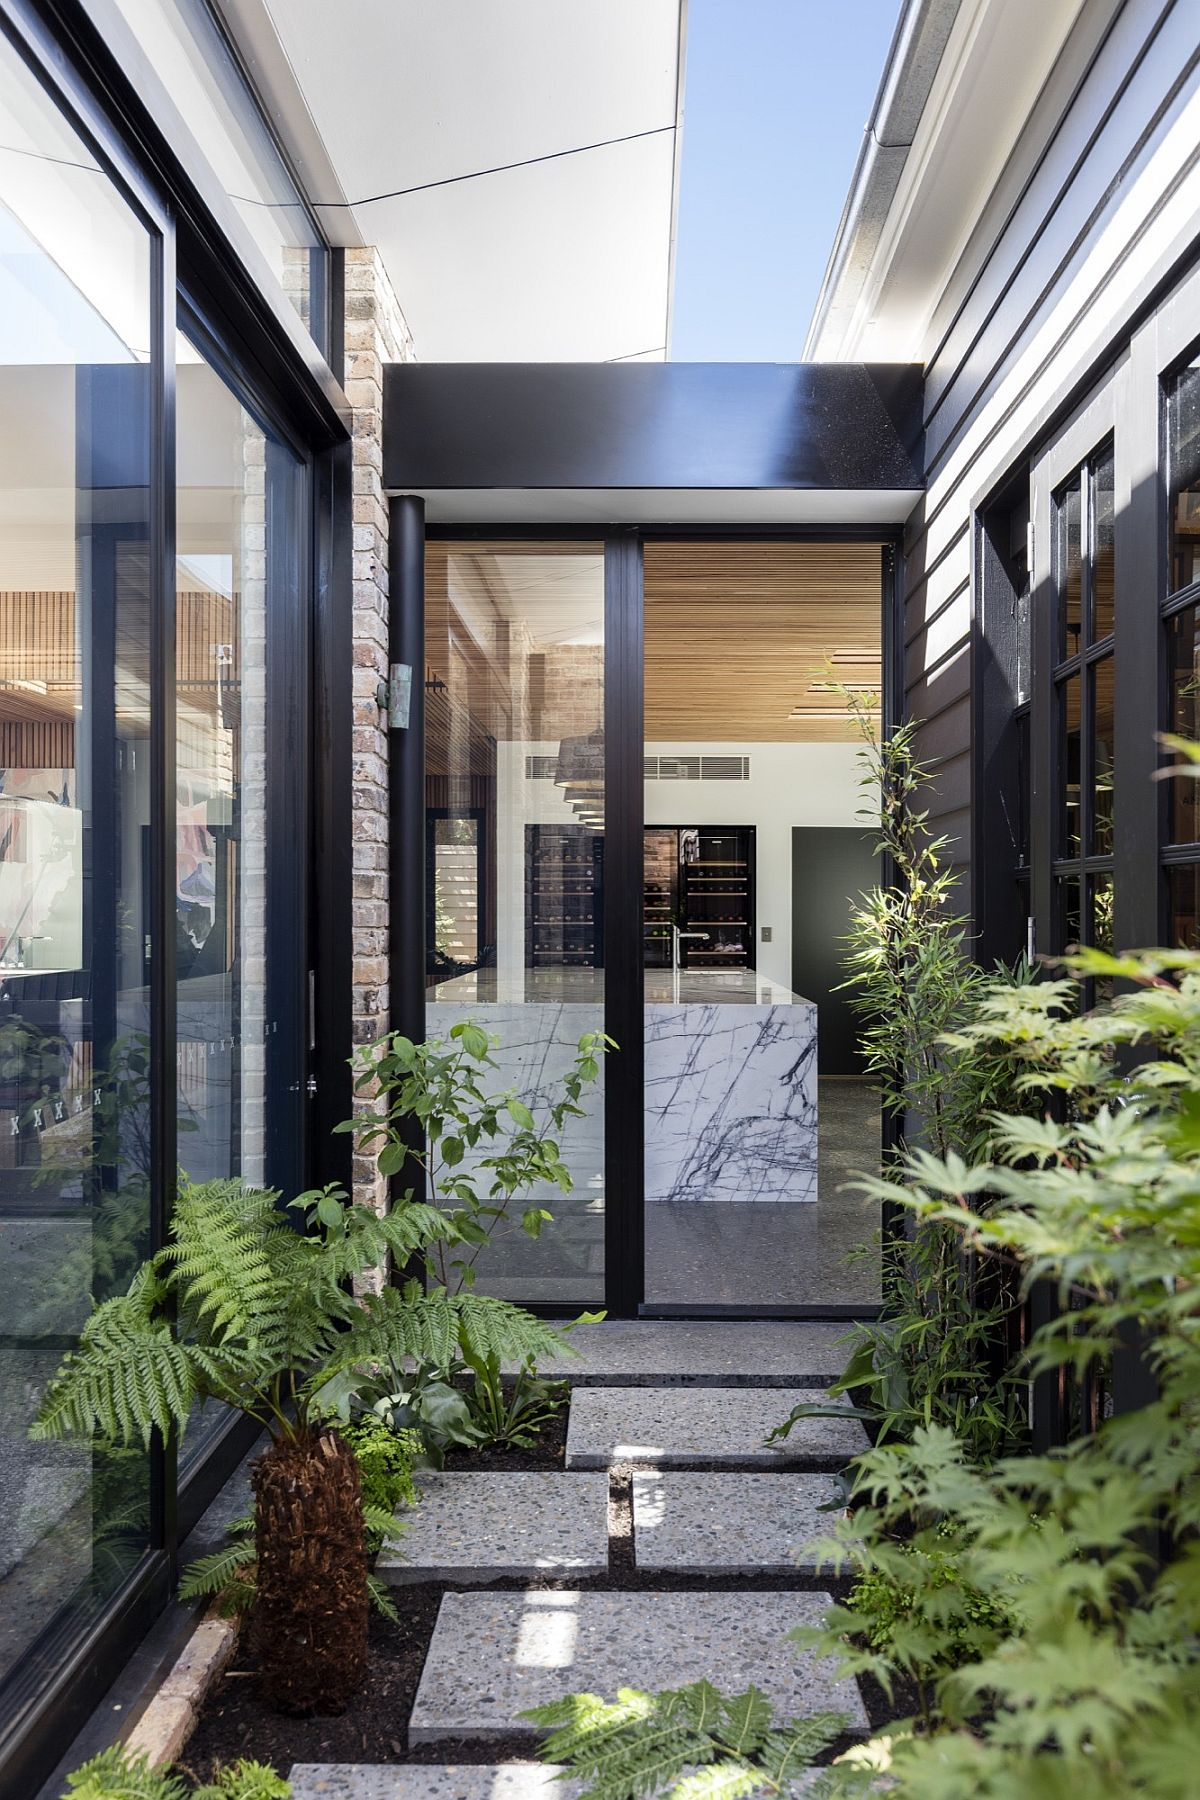 Central courtyard of the revamped Aussie home with greenery